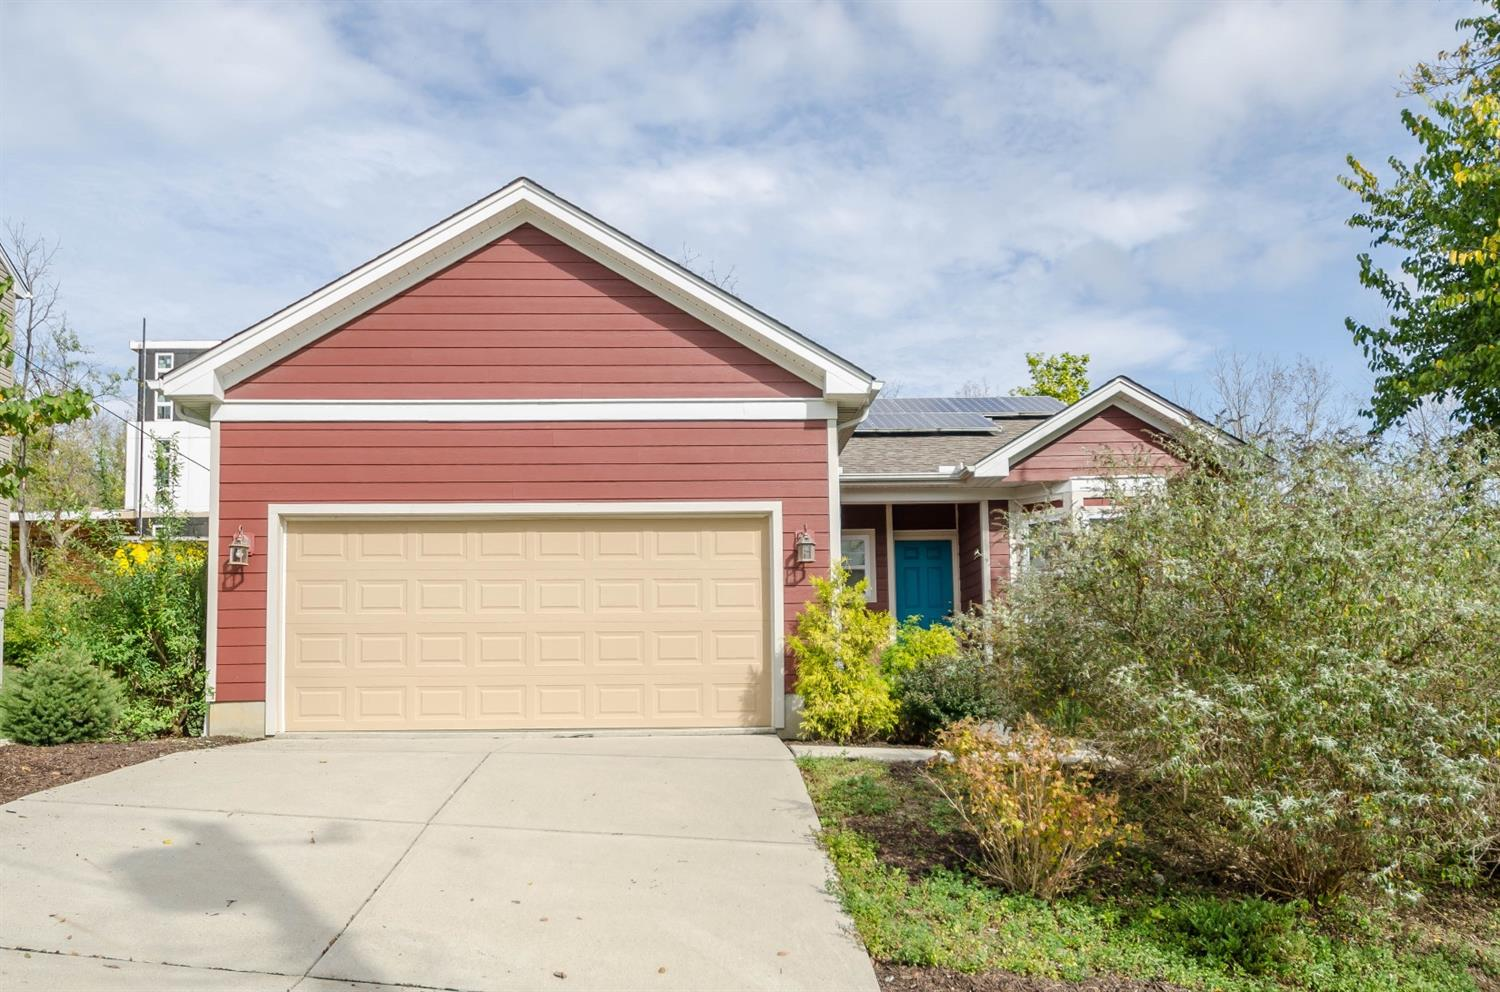 Wonderful ranch home that's LEED Gold certified*Solar panels*Geothermal system*Hardie Fiber cement siding*Energy Star appliances*Tax abatement till 2026*Very low maintenance property*Unfinished walkout basement*This home is a must see!*